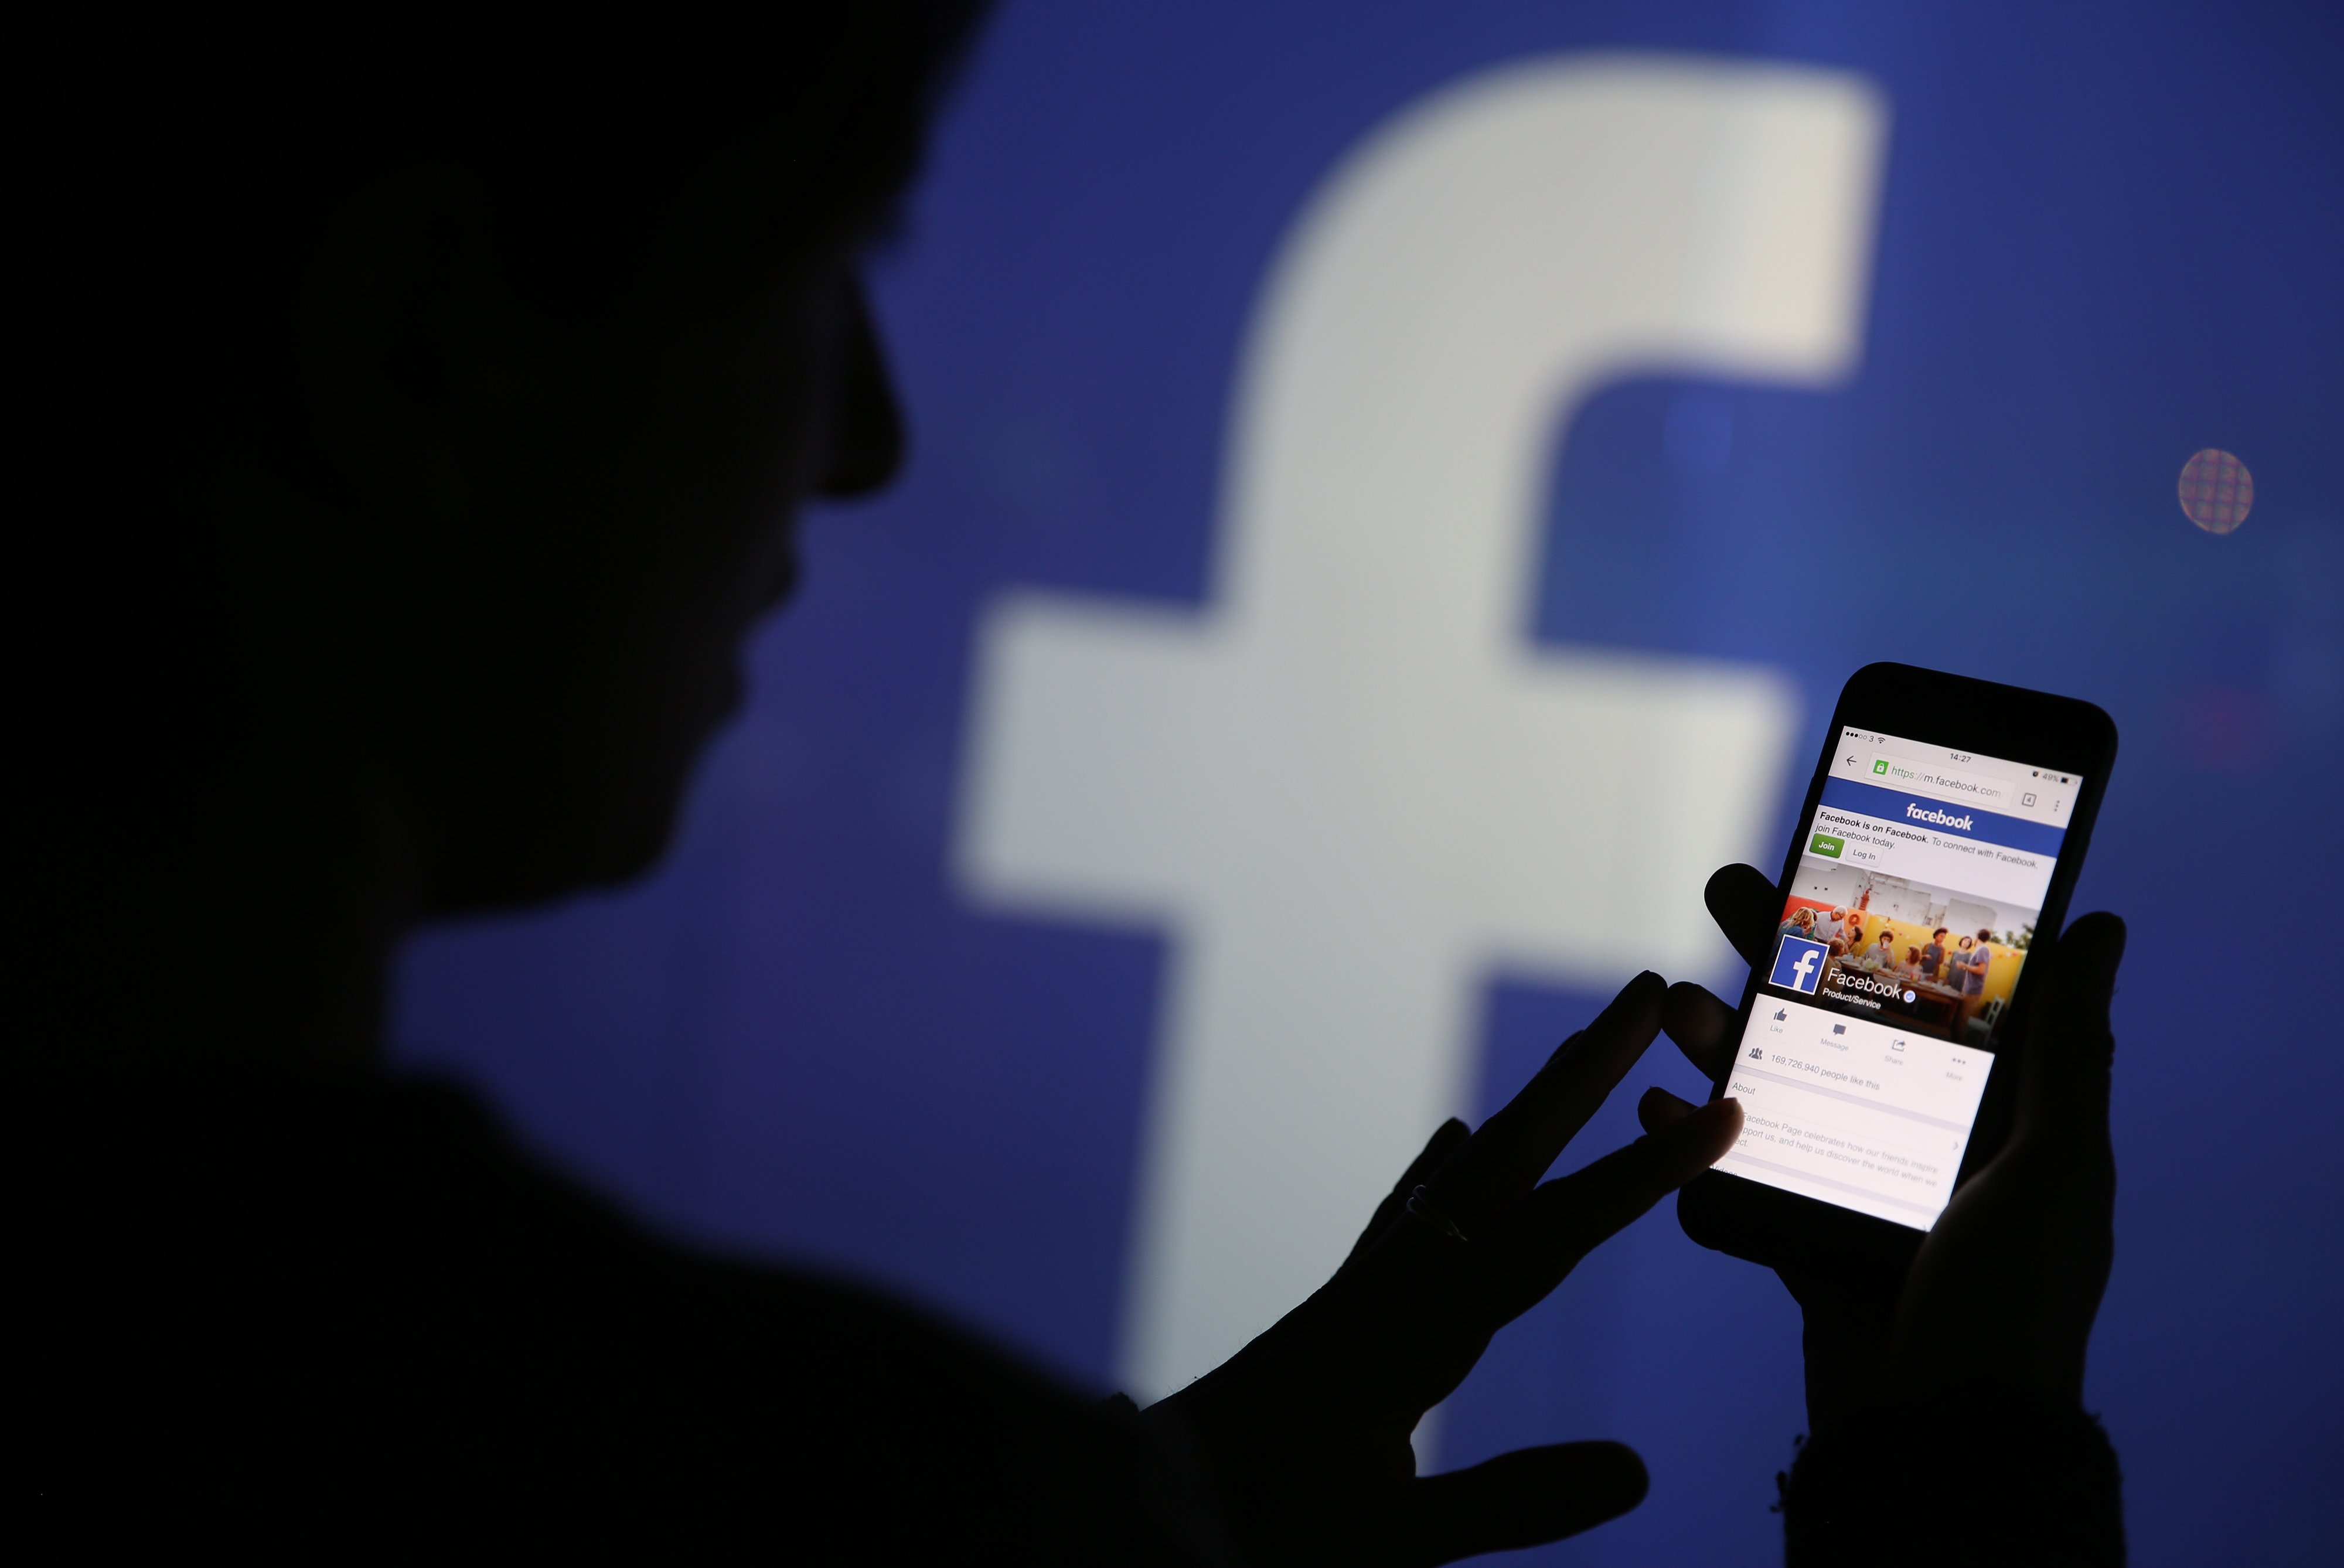 Local users affected by Cambridge Analytica, Australia launches Facebook probe